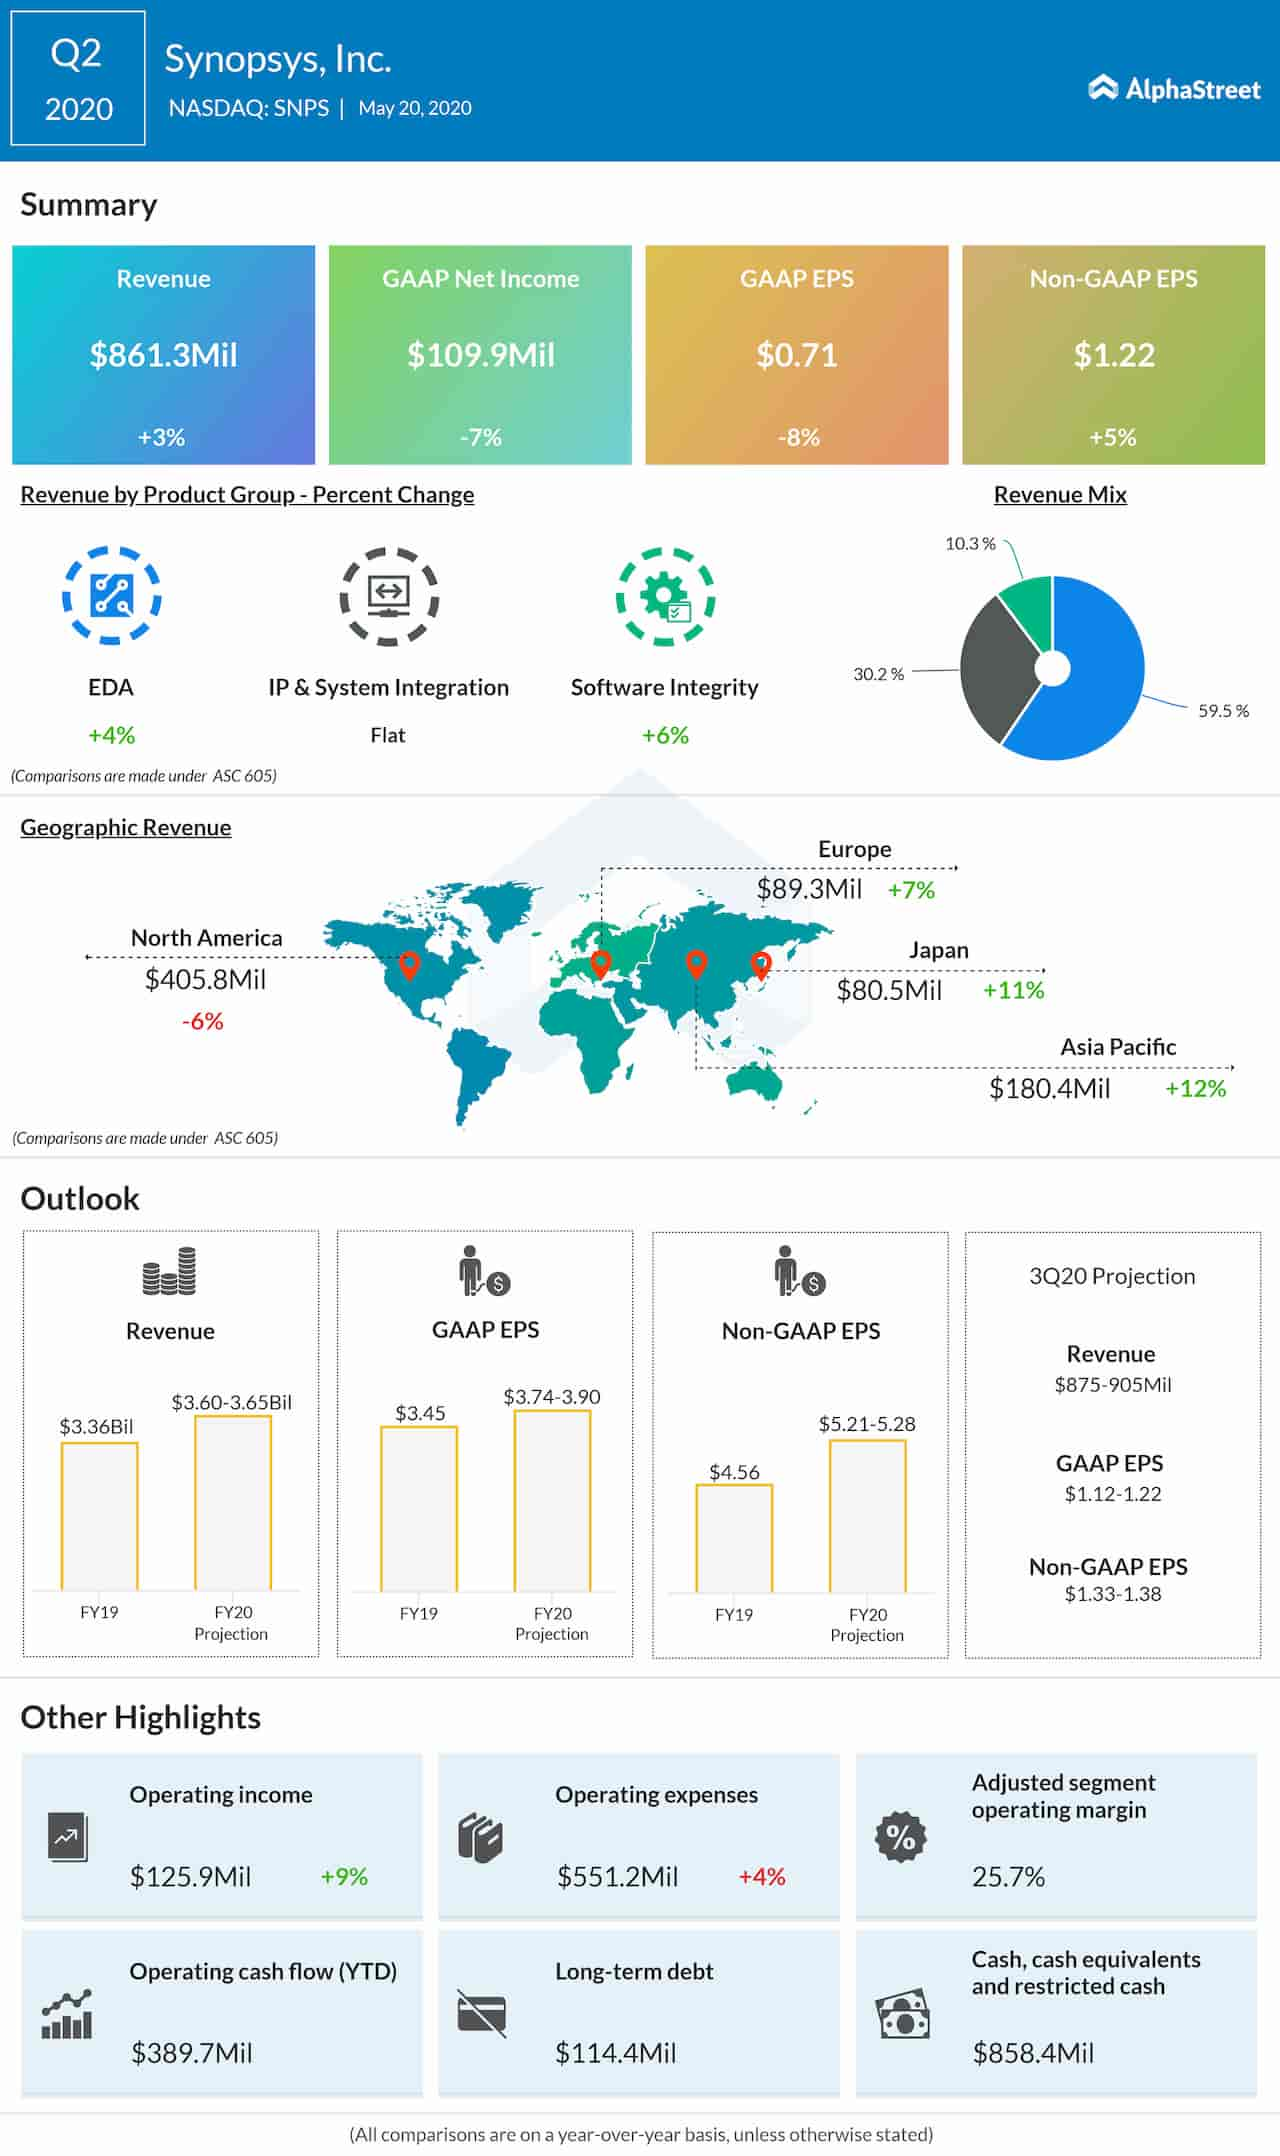 Synopsys Q2 2020 Earnings Infographic